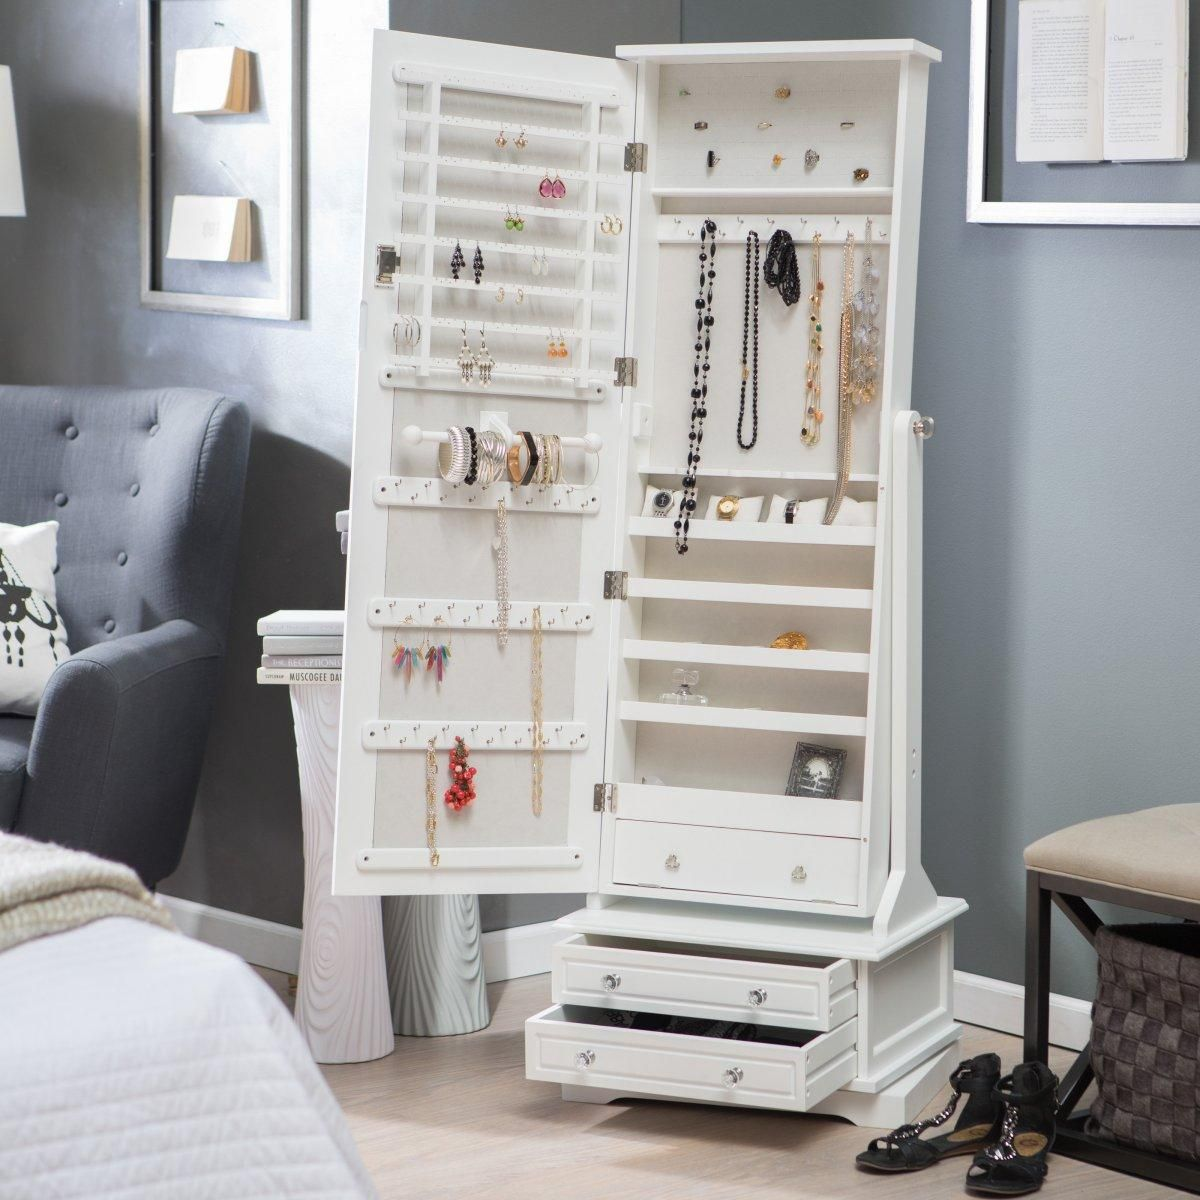 Locking Jewelry Armoire And Adjustable Full Length Mirror Combined